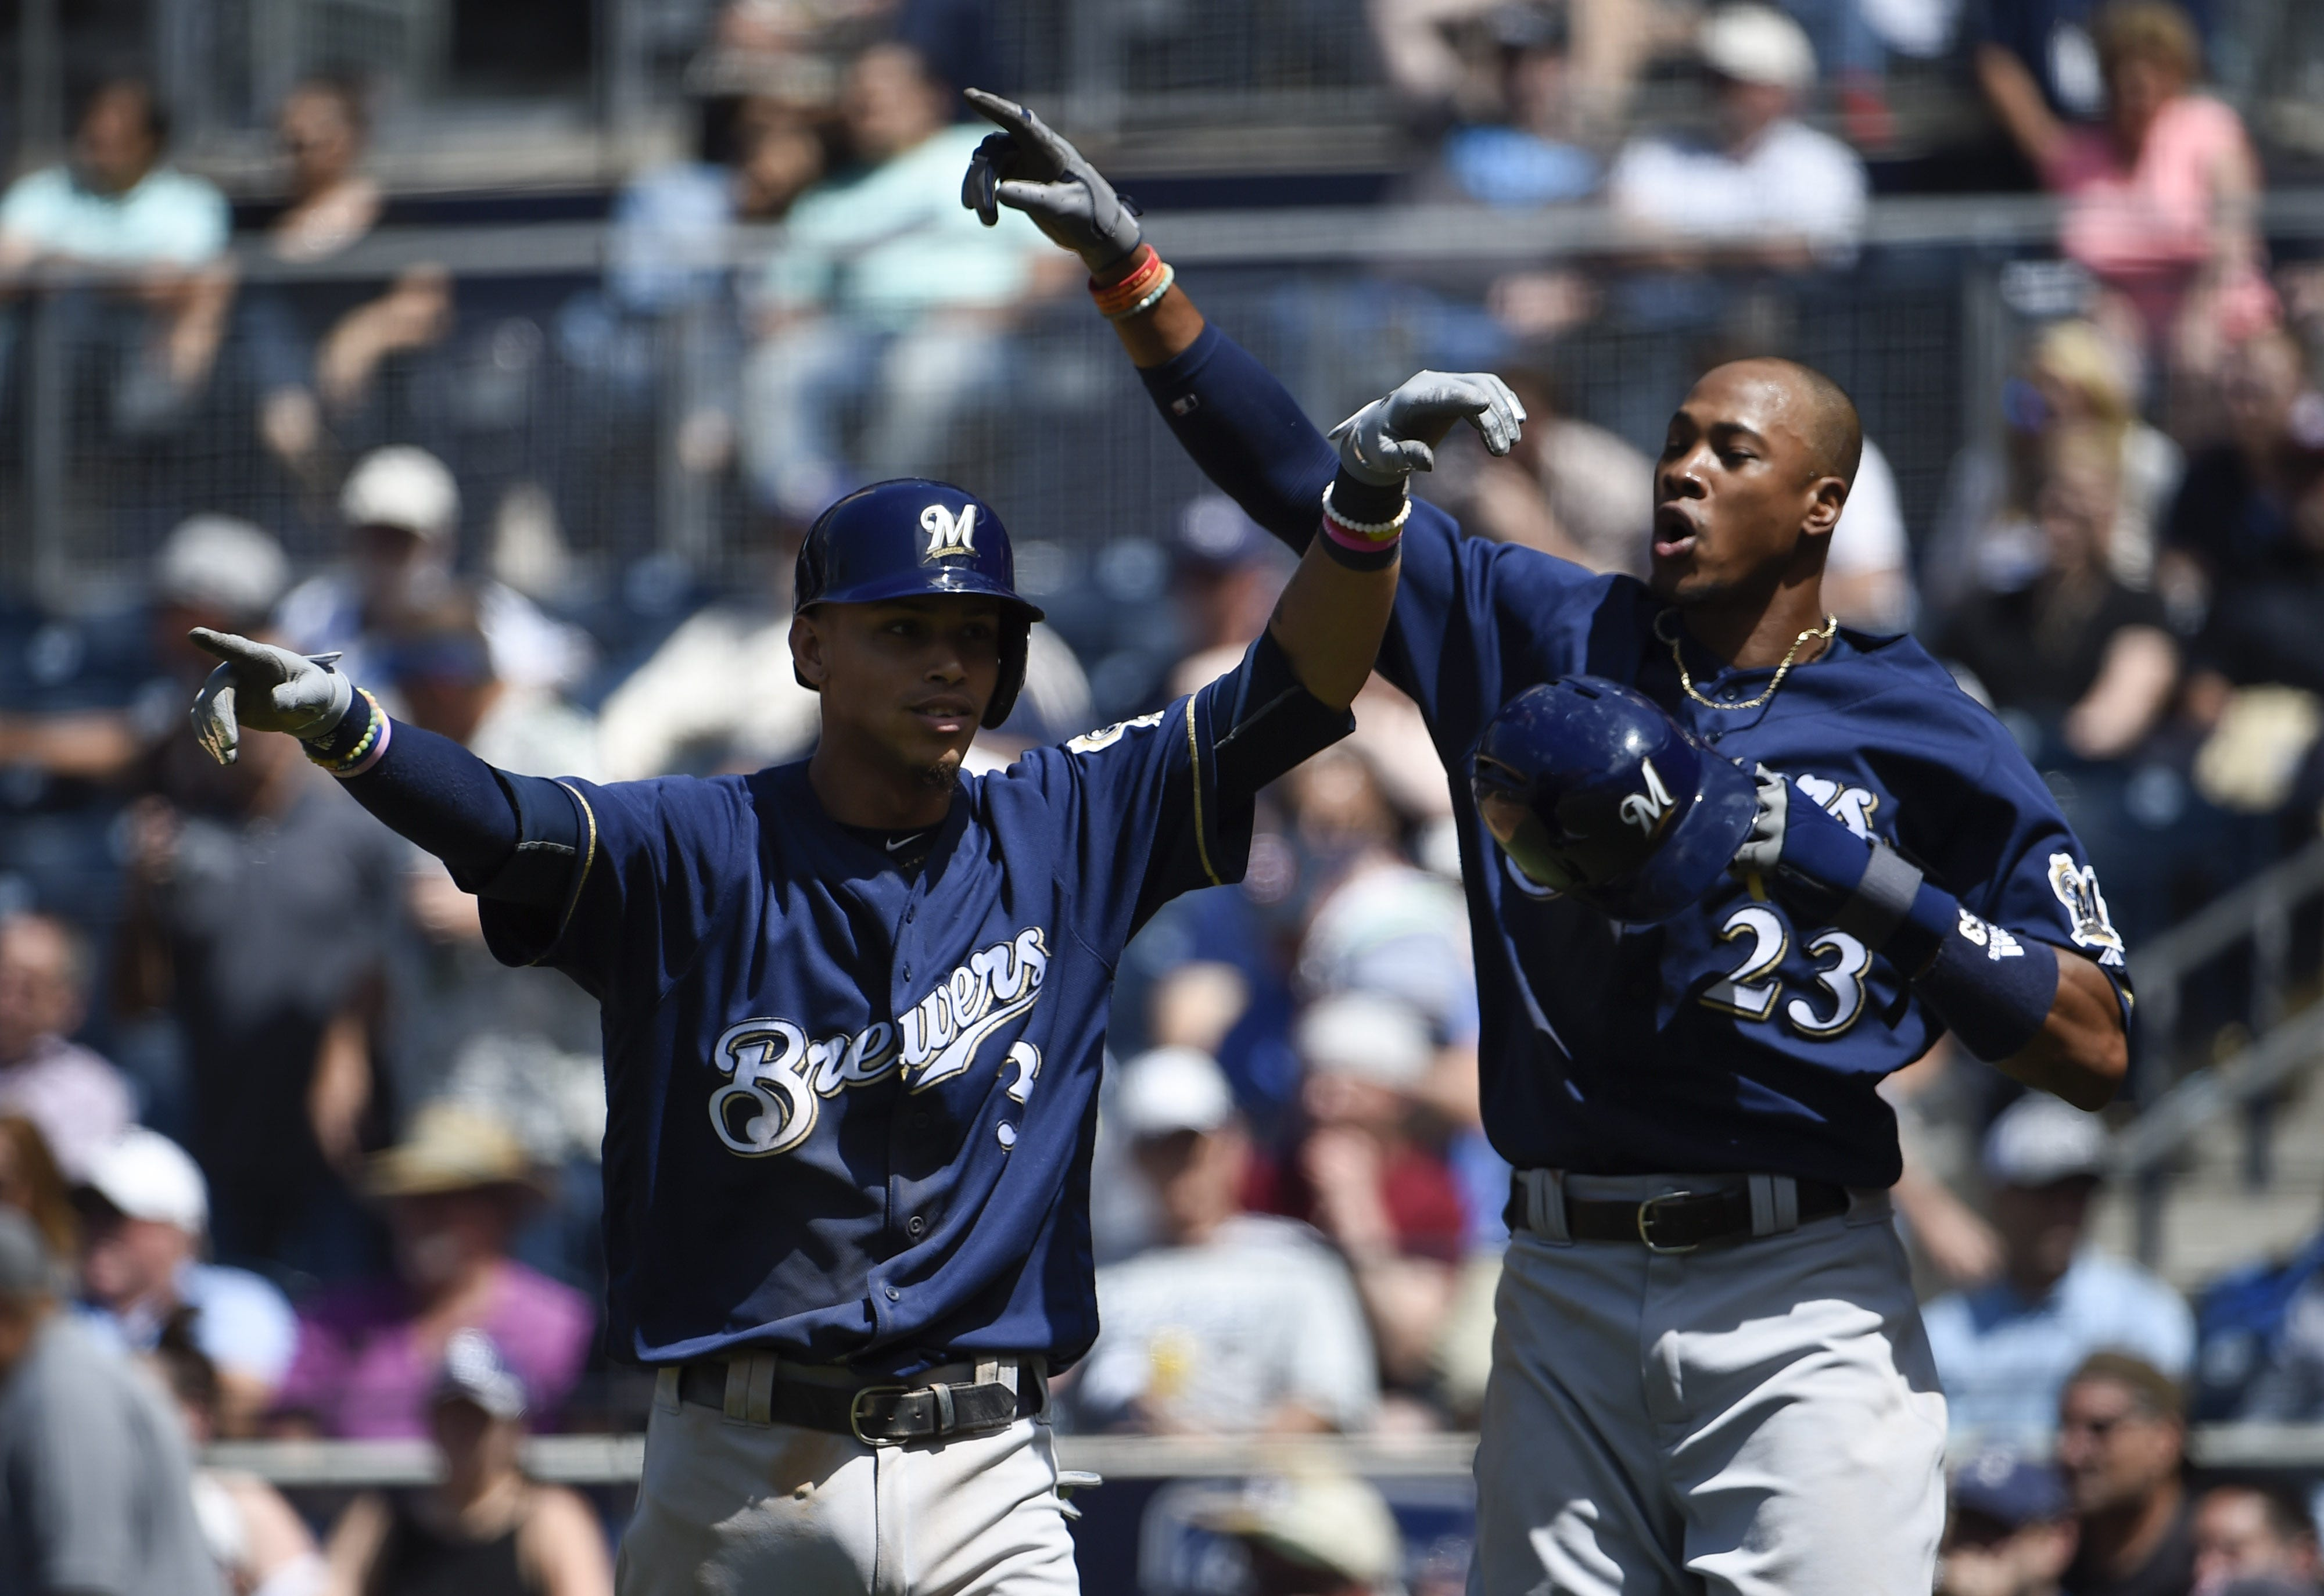 Podcast: First-place Brewers riding hot streak